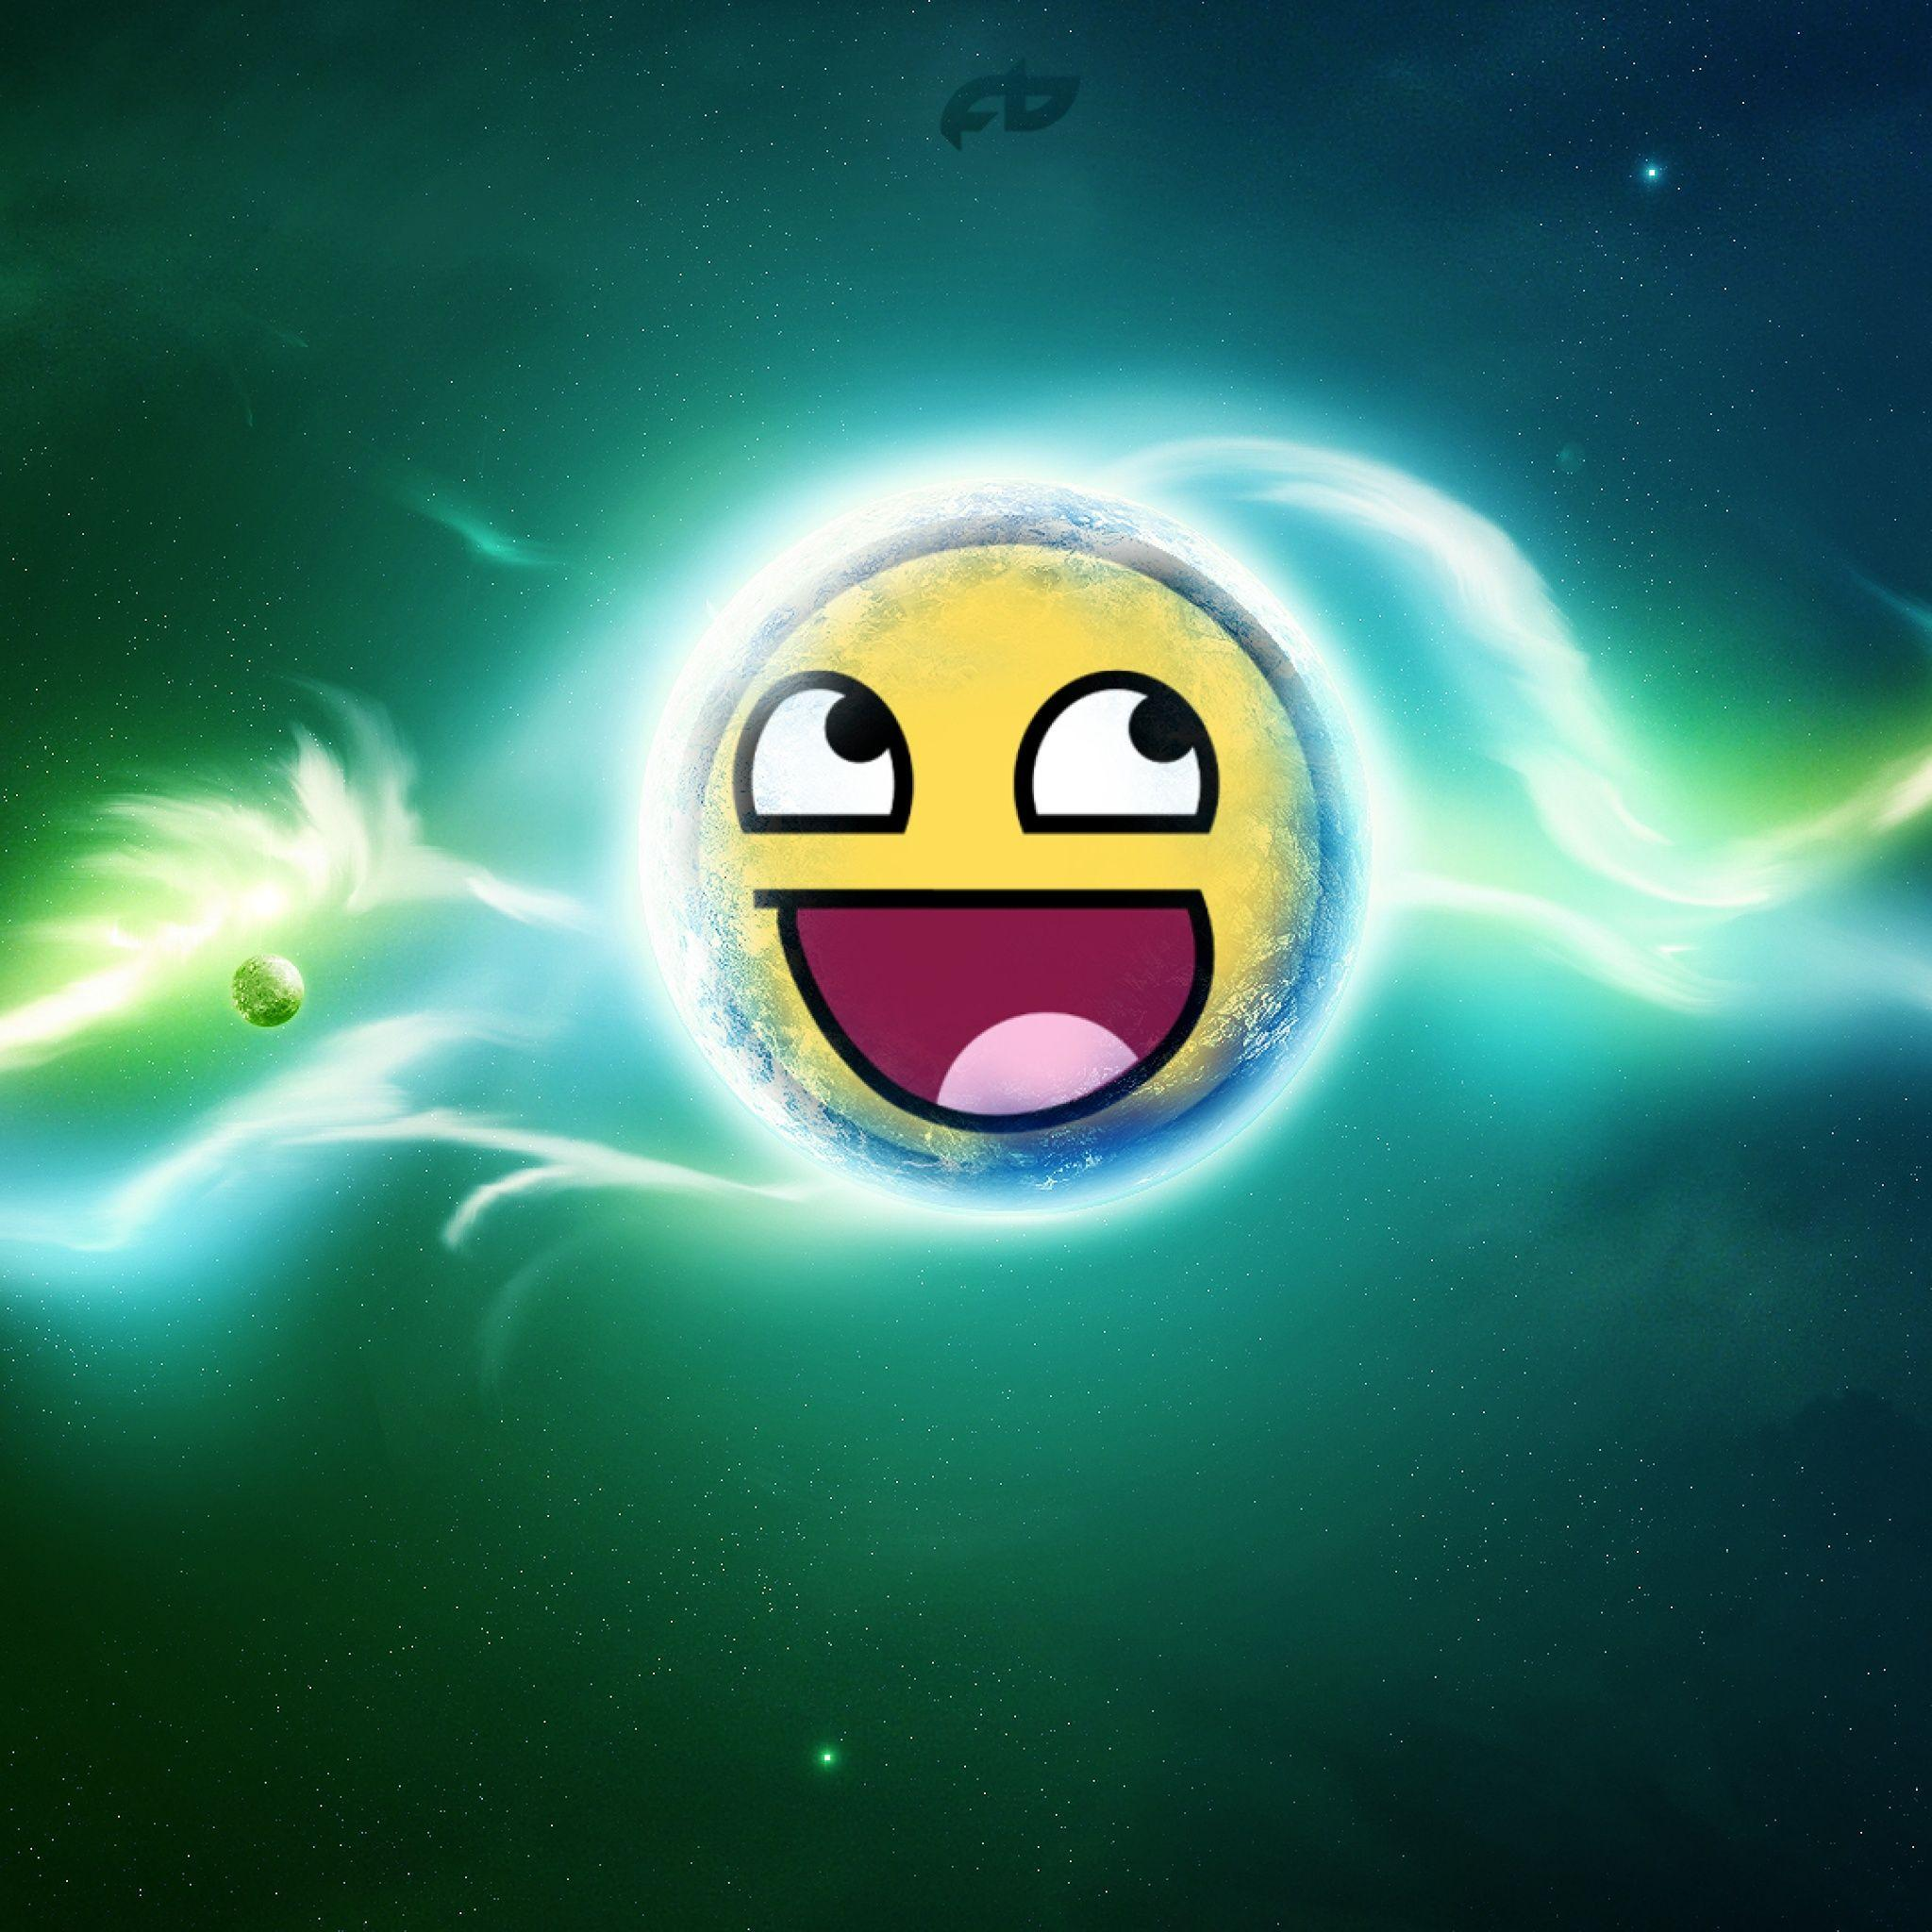 epic smiley wallpapers wallpaper cave